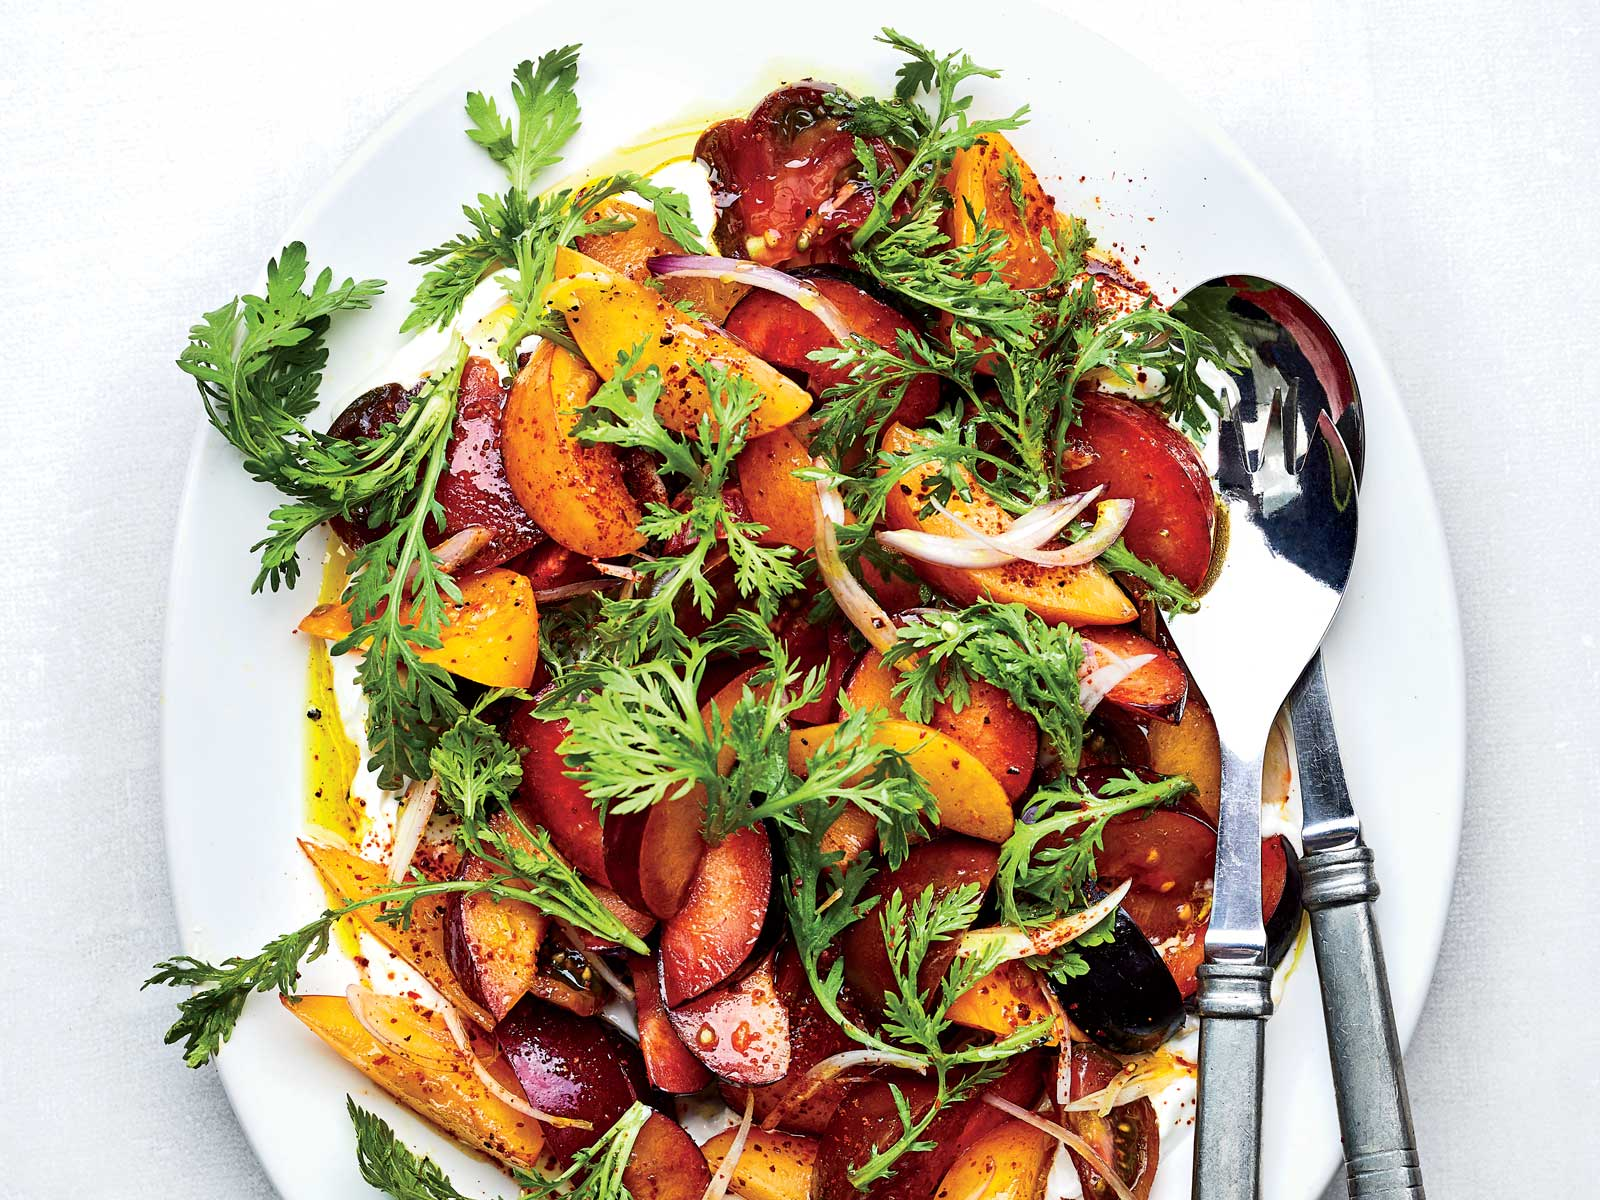 Tomato and Plum Salad with Chrysanthemum Greens and Madras Curry Vinaigrette